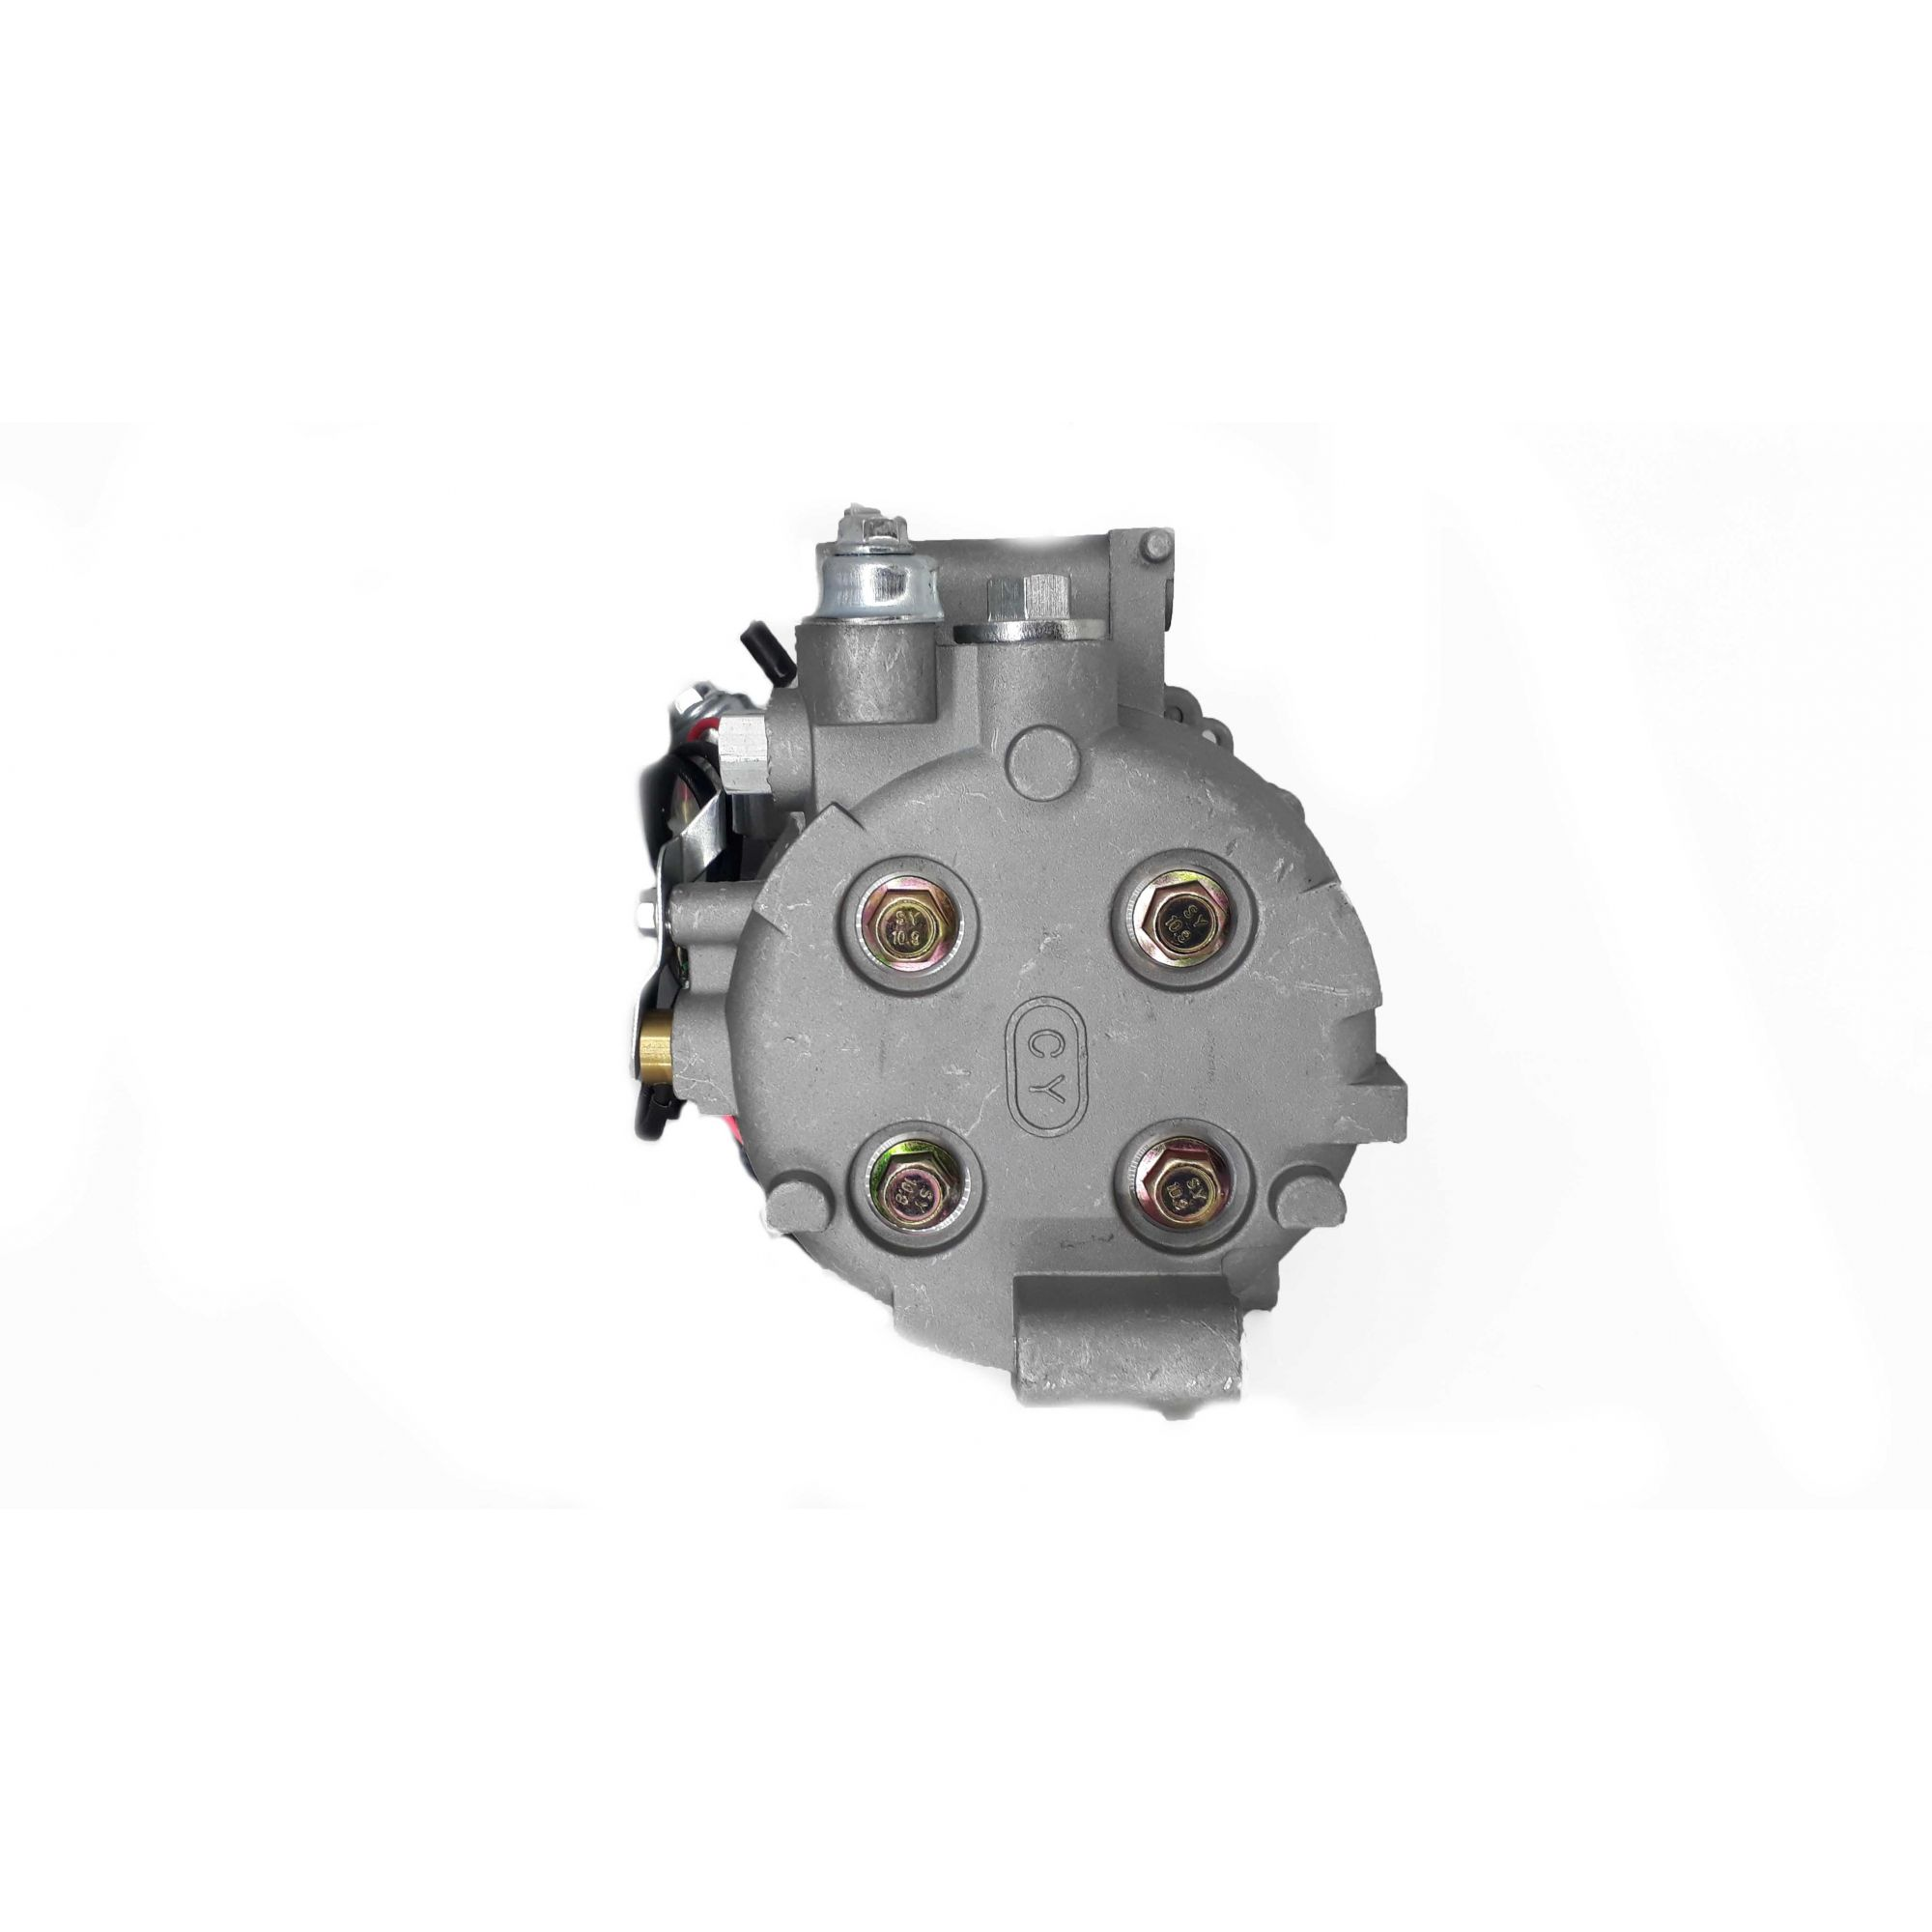 Compressor Honda New Civic / Accord / Cr-v TRSE07 - 7pk